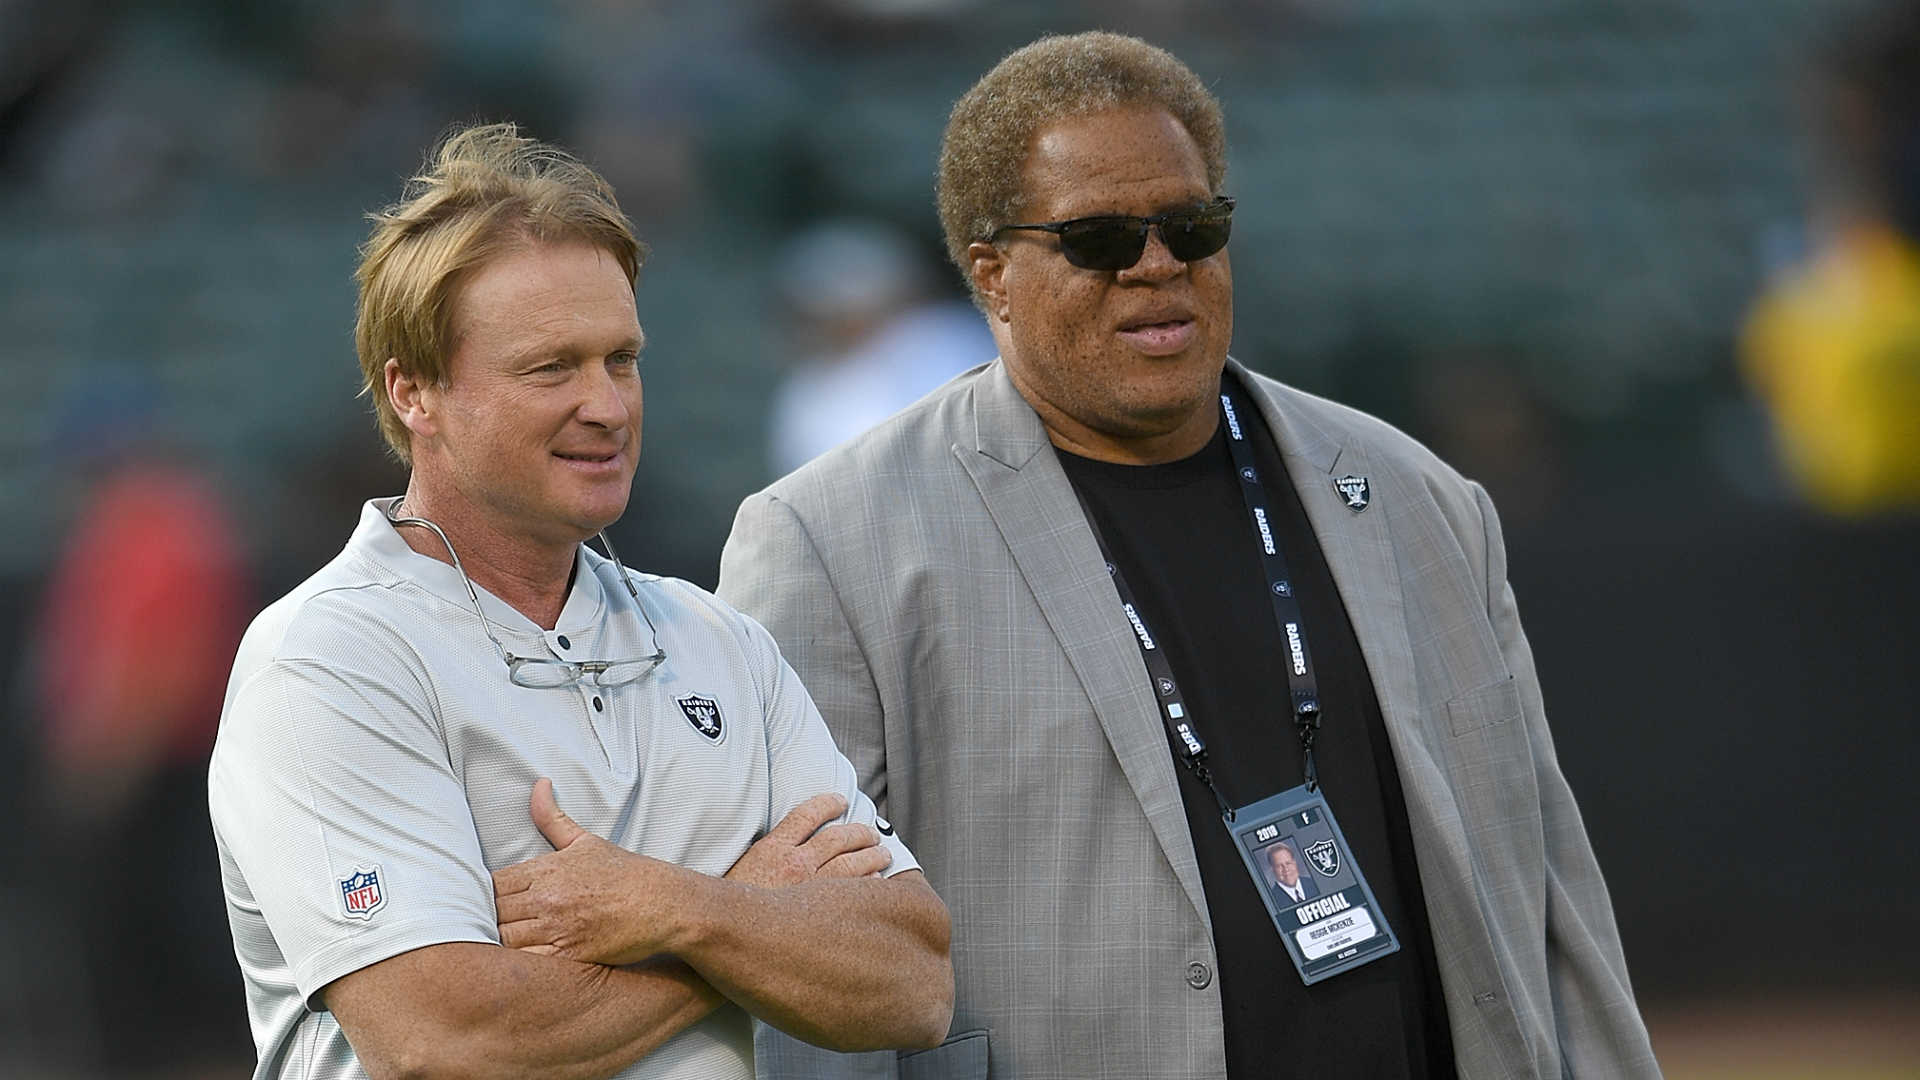 Ex-Raiders GM Reggie McKenzie backed by NFL panel for future jobs, report says